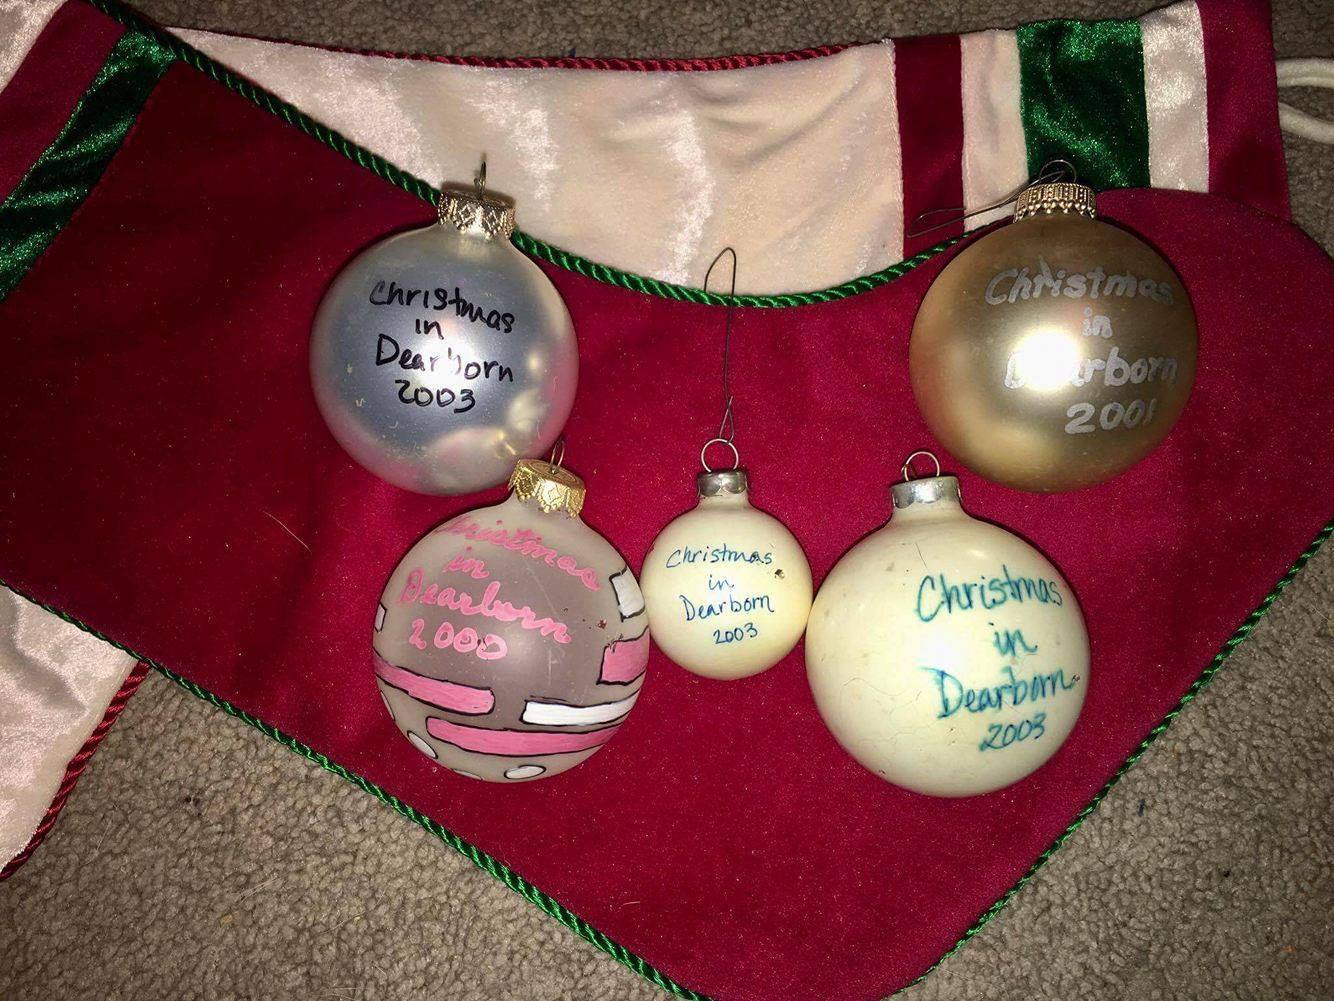 Contributed photo Nicole Otto still uses hand-painted Christmas ornaments she collected as a kid during Christmas in Dearborn celebrations.